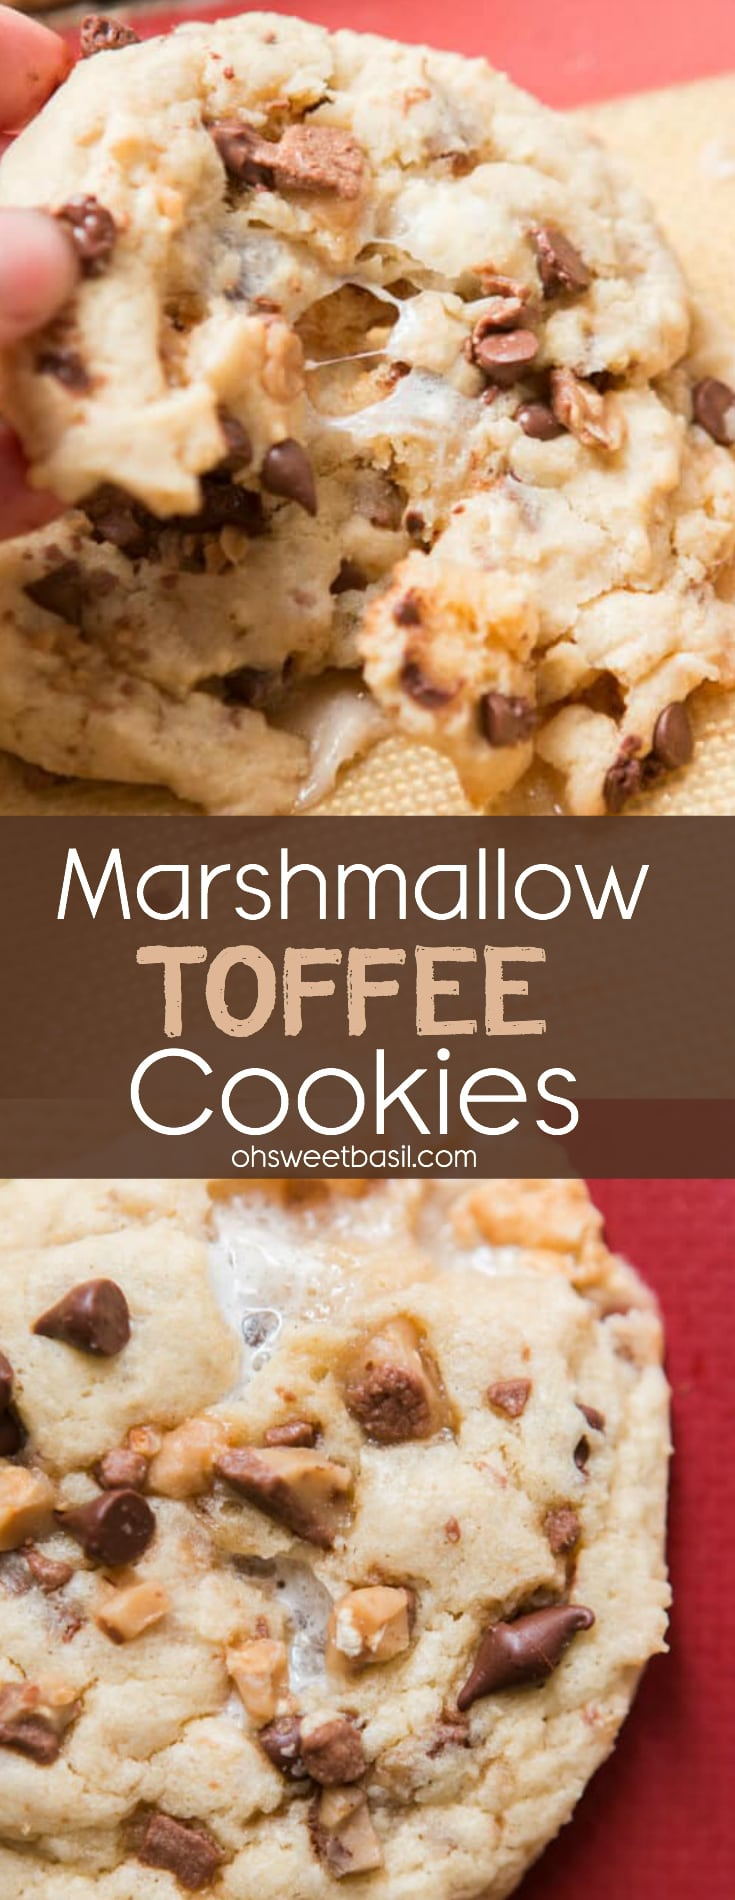 A marshmallow toffee cookie with bits of chocolate chips, toffee and ooey gooey marshmallows